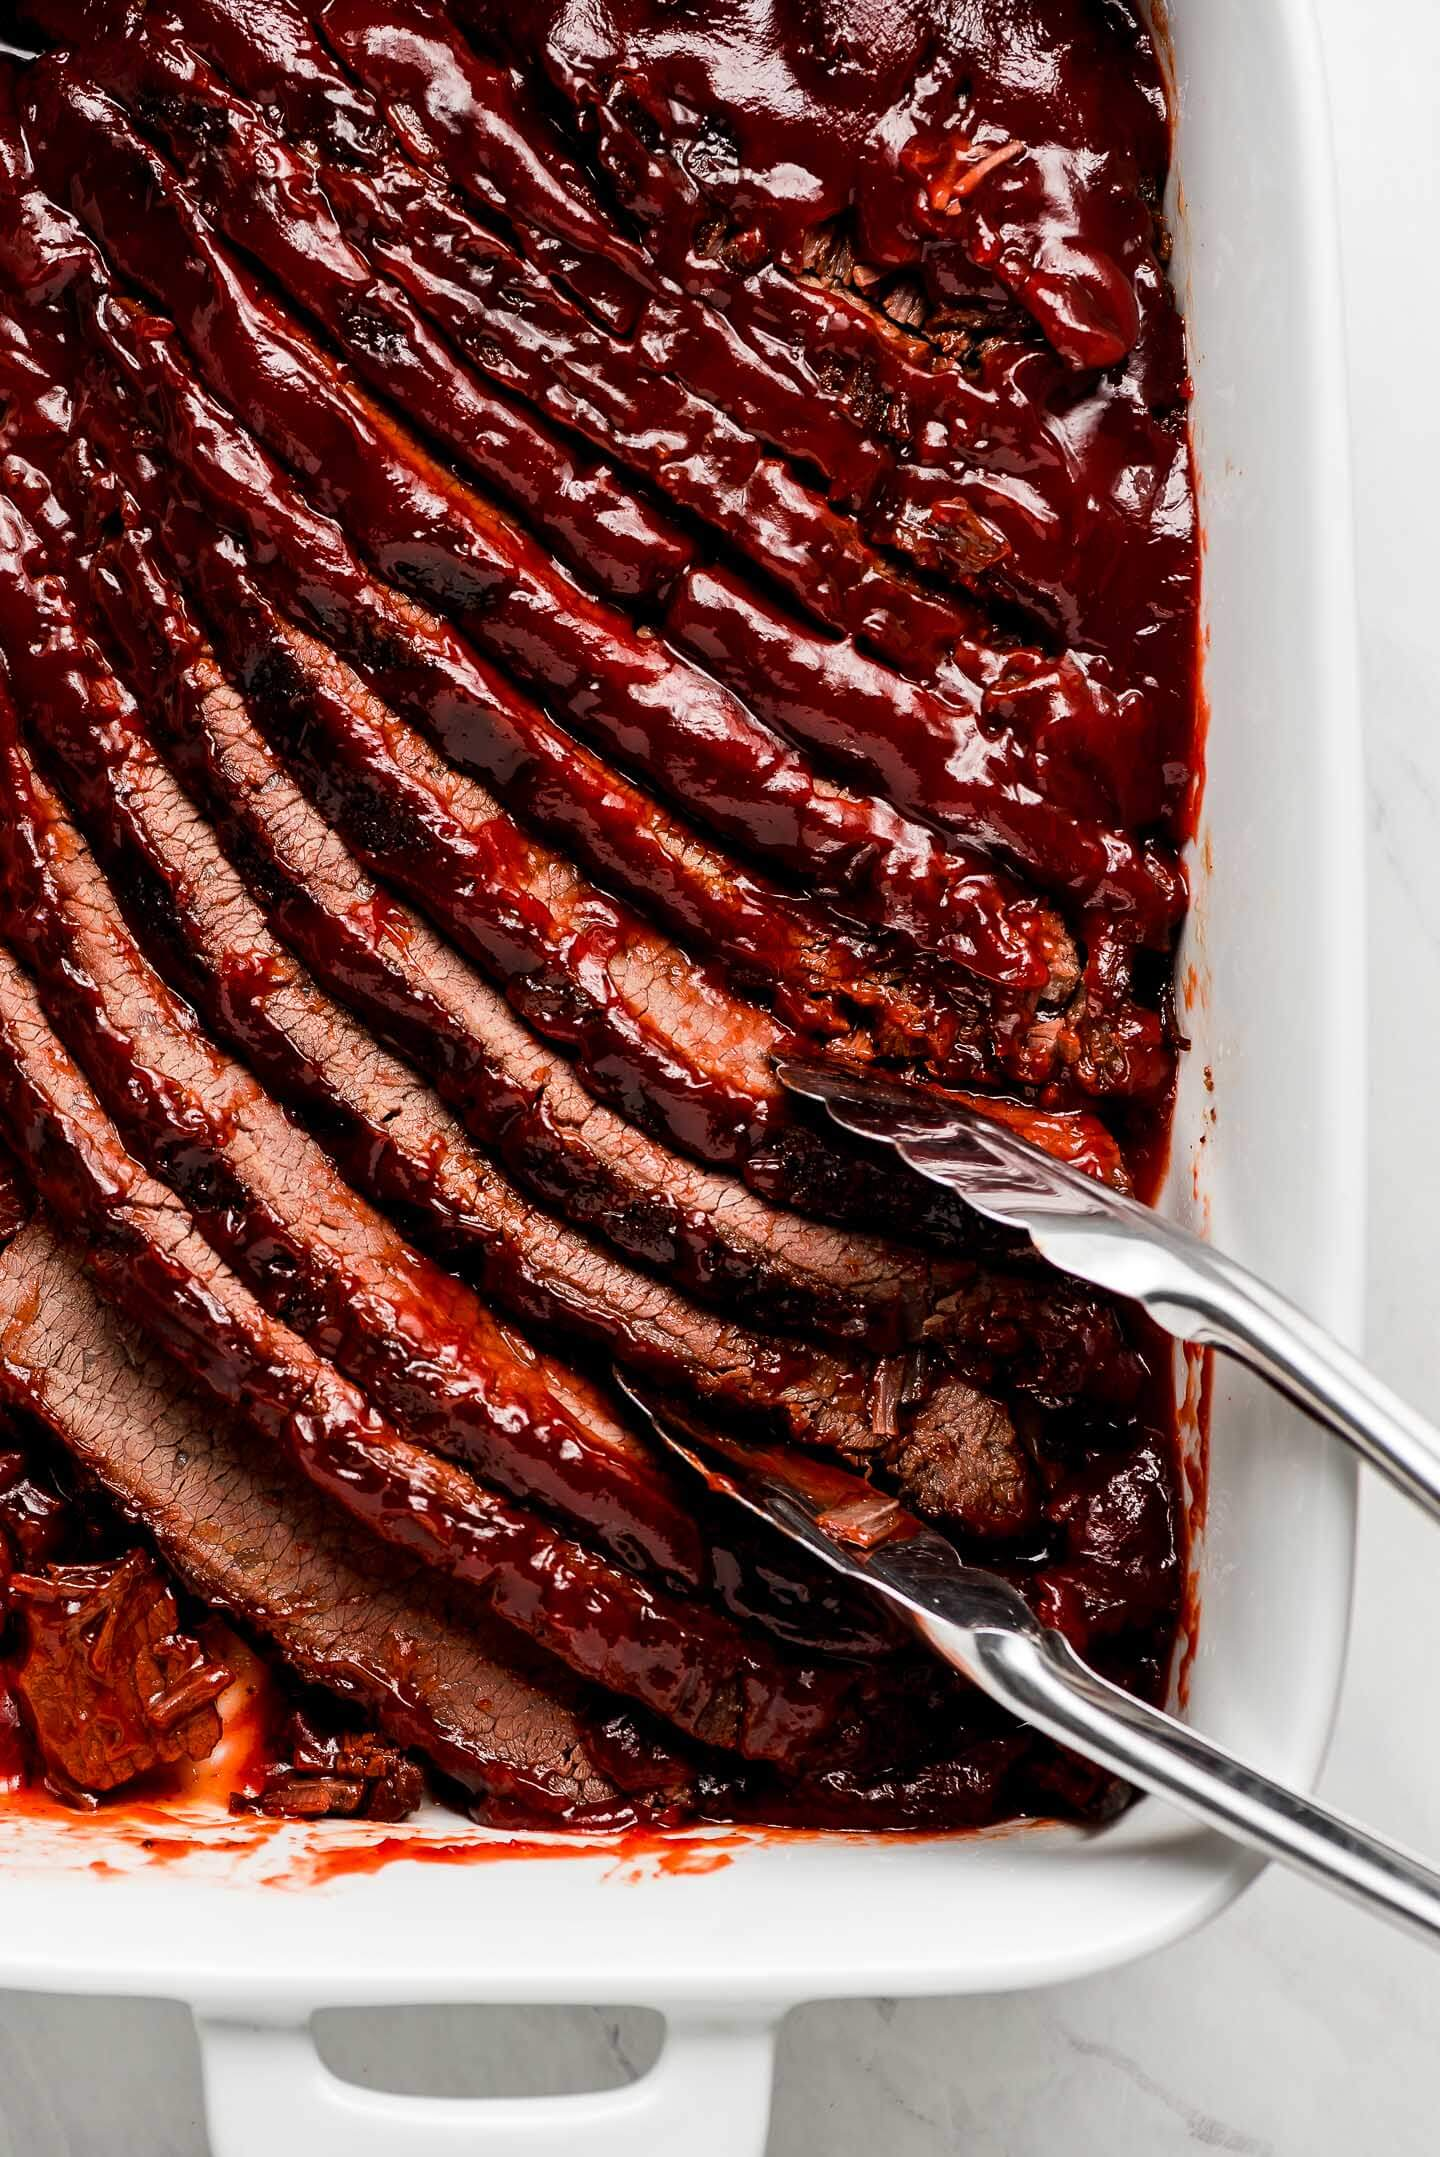 Tongs grabbing slices of barbecue Brisket from a pan.